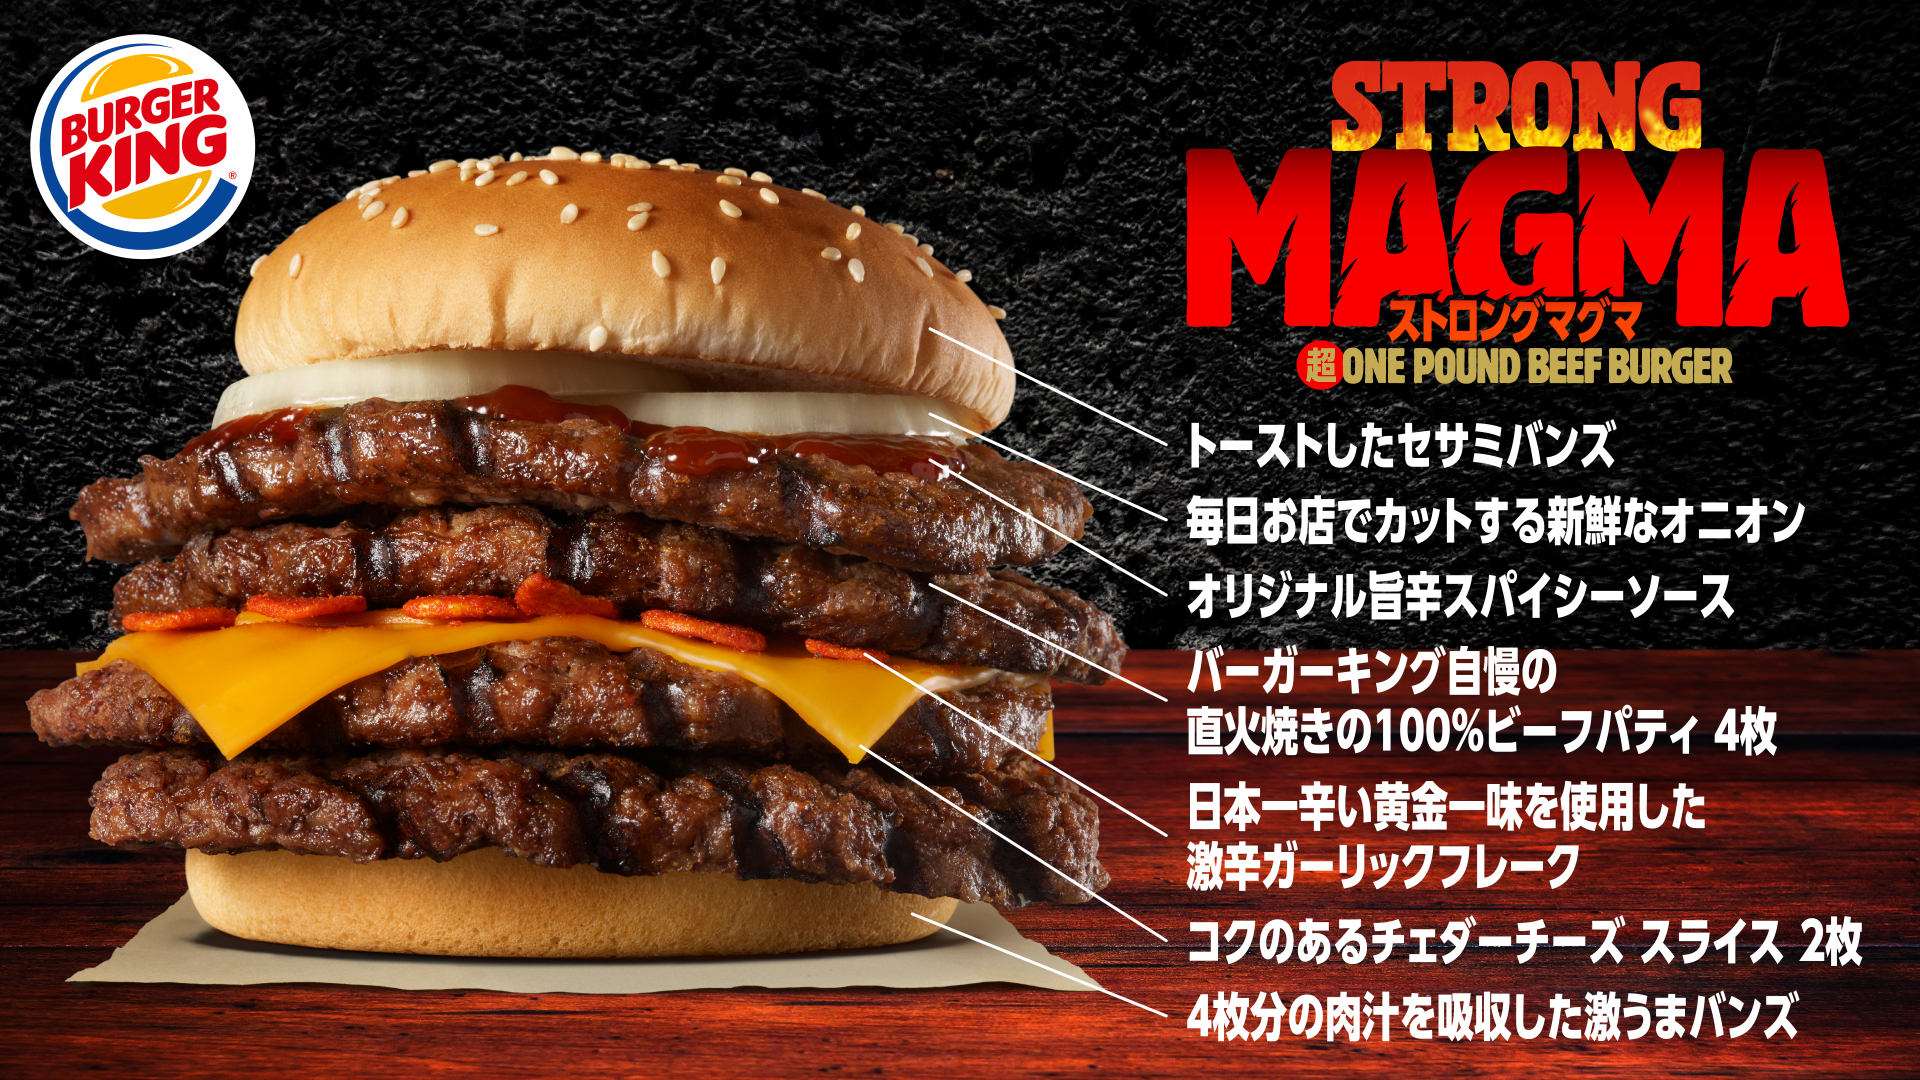 Burger King Japan's Strong Magma Super One Pound Beef Burger has us quaking in our boots